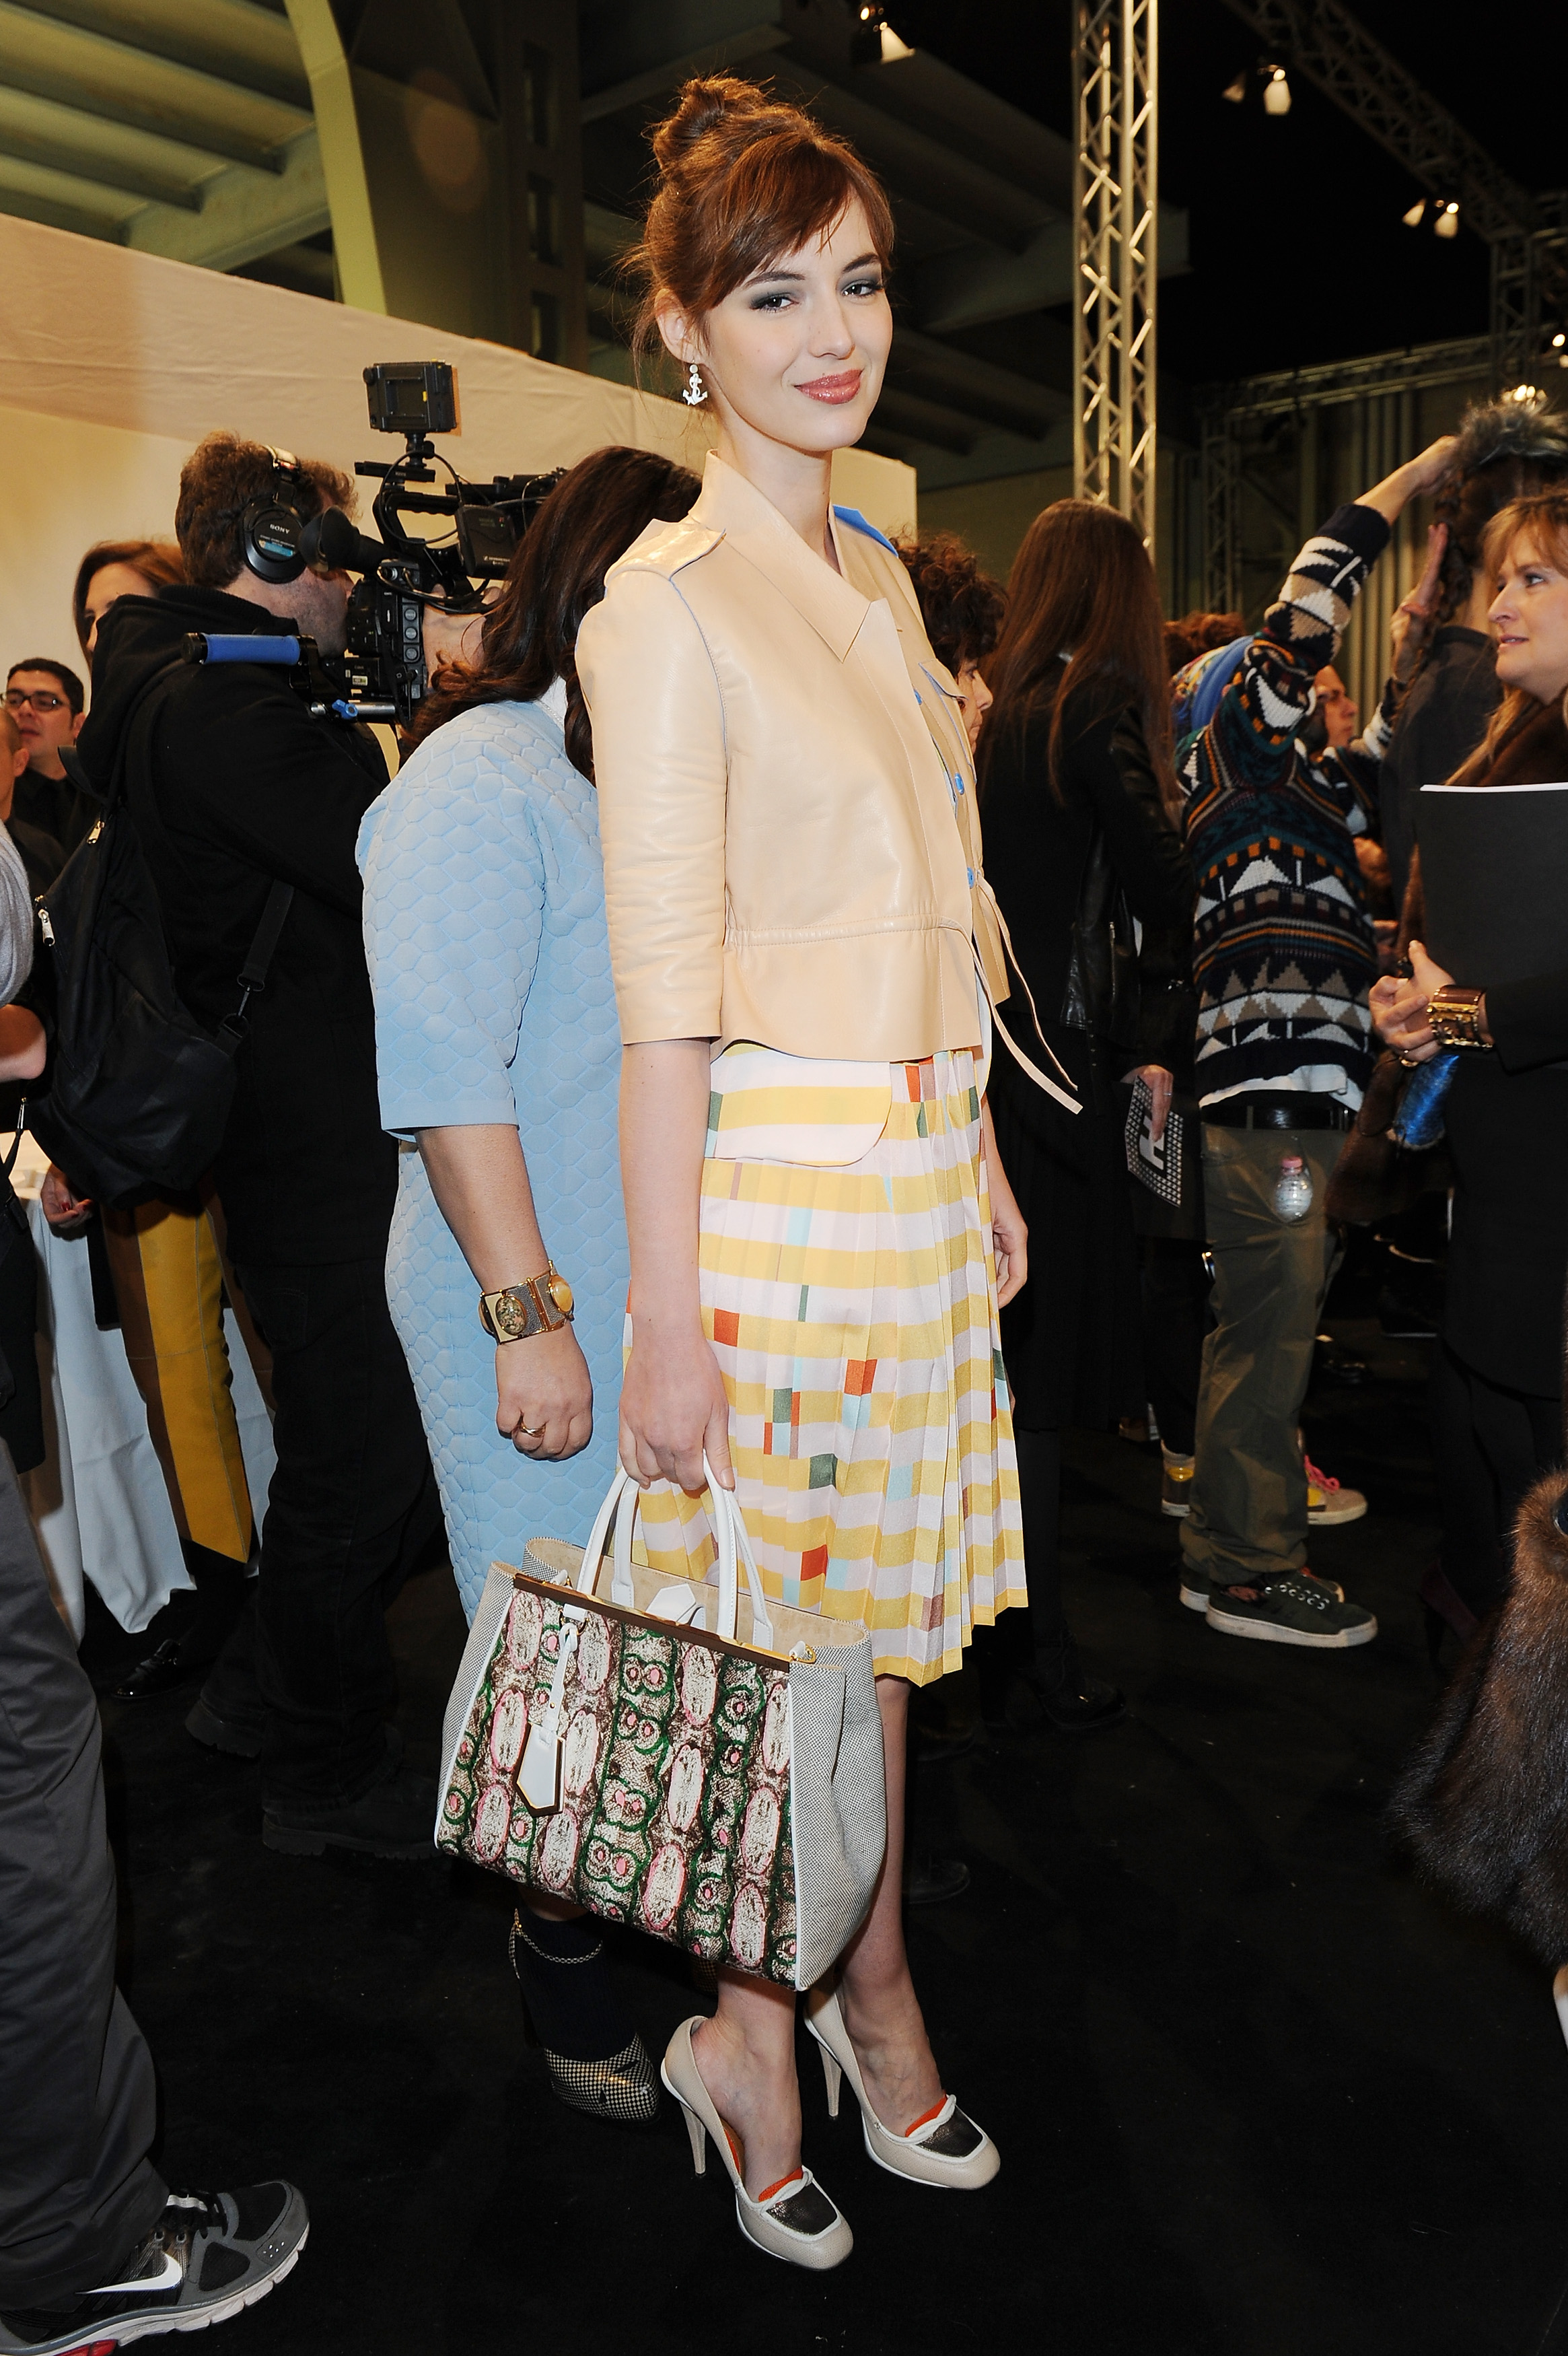 Louise Bourgoin at the Fendi Fall 2013 show in Milan.